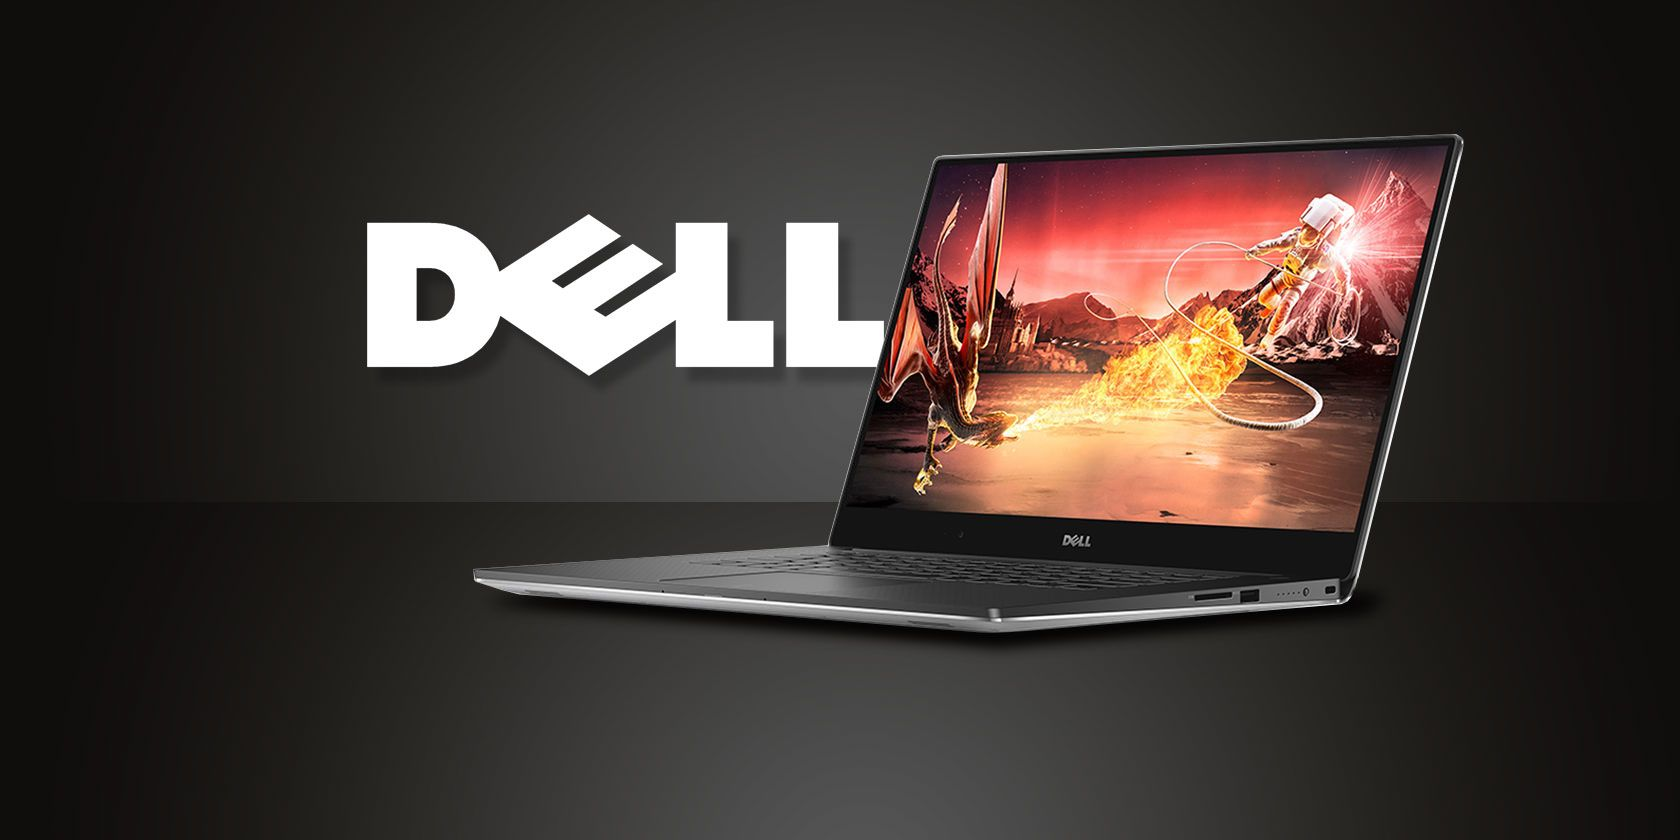 95a7e110a6012 اسعار لاب توب Dell في مصر 2019